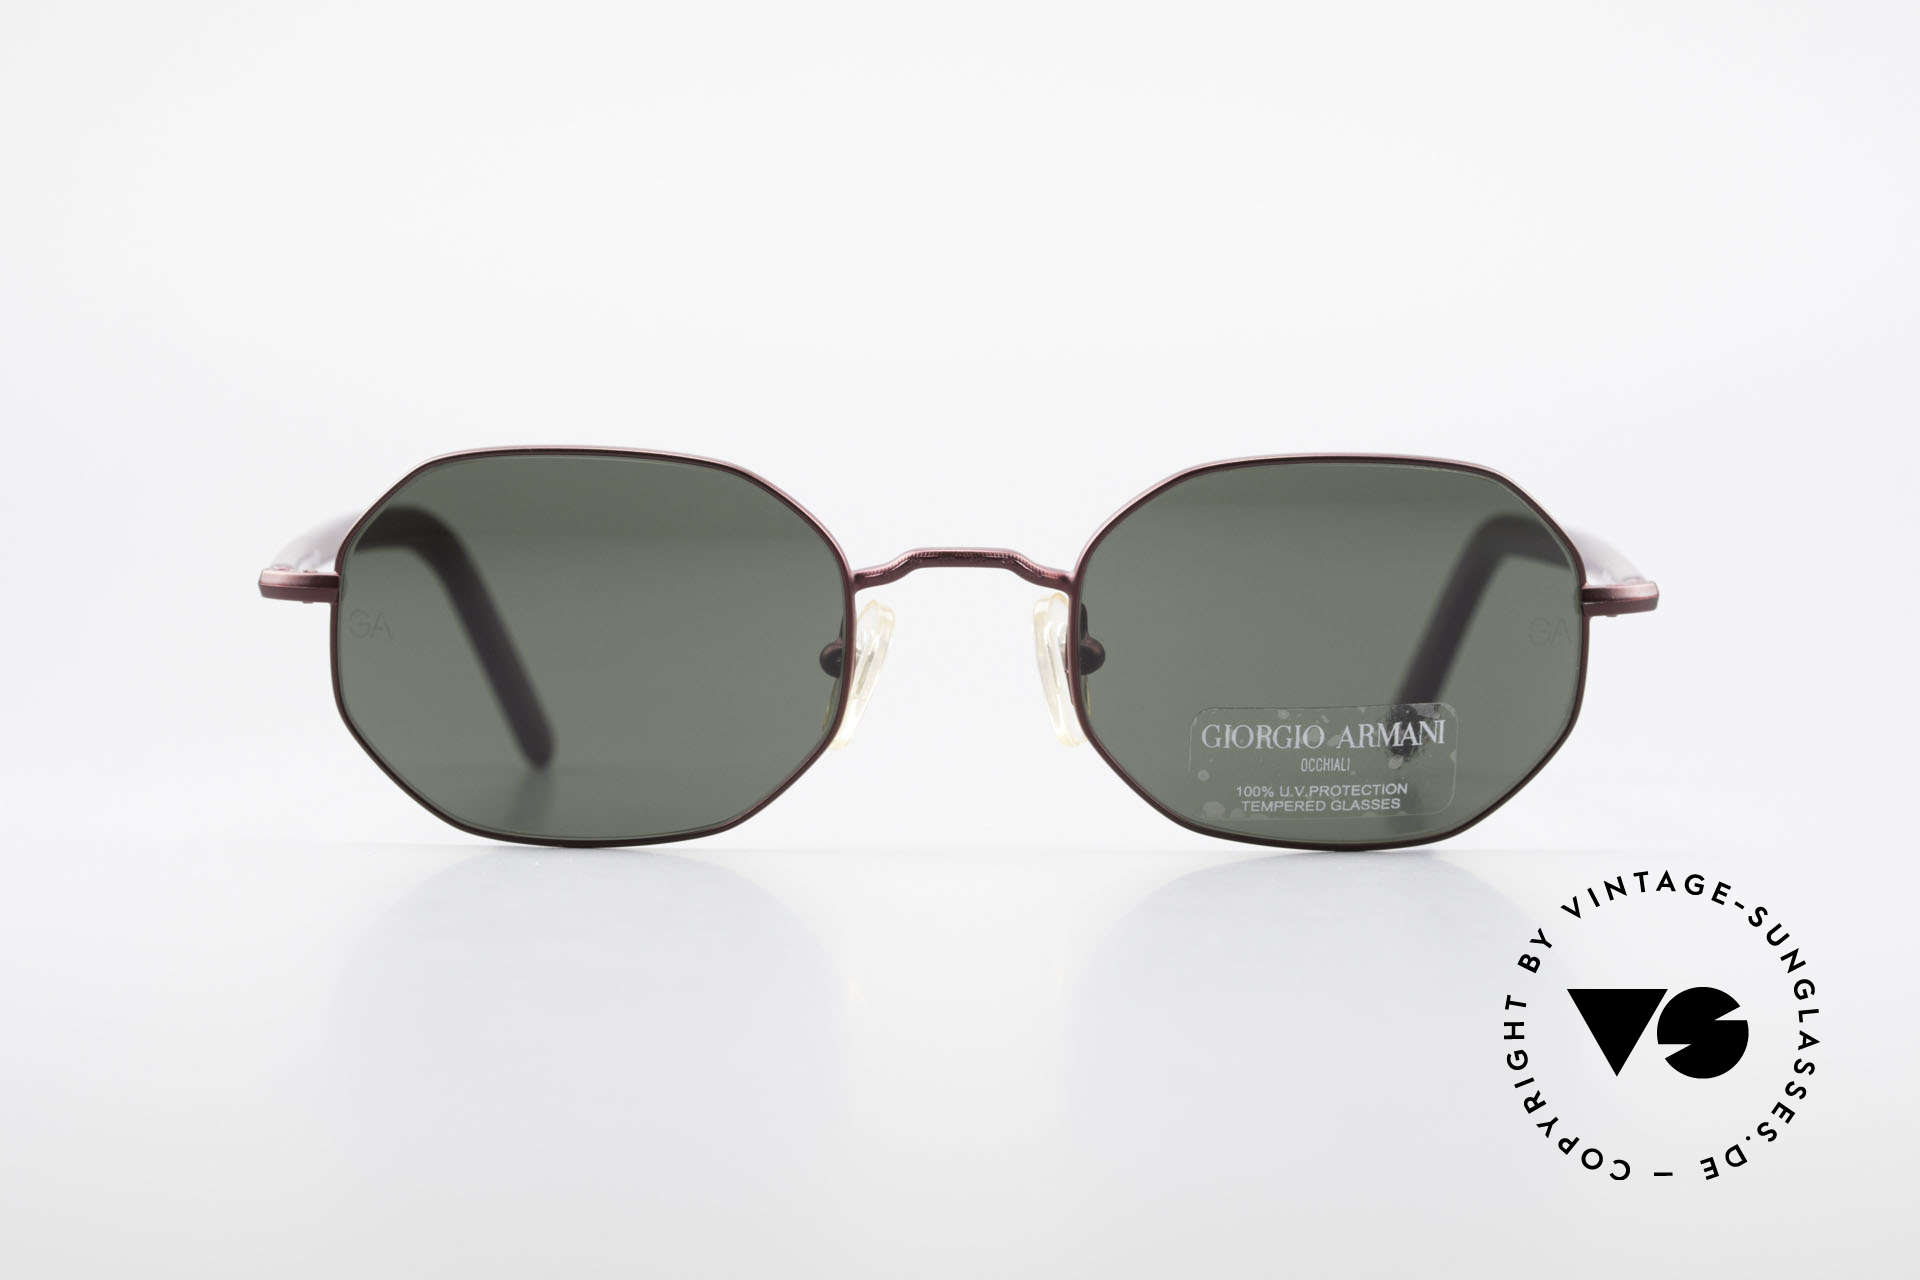 Giorgio Armani 664 Octagonal Vintage Sunglasses, octagonal metal frame, TOP quality, ruby-colored, Made for Men and Women